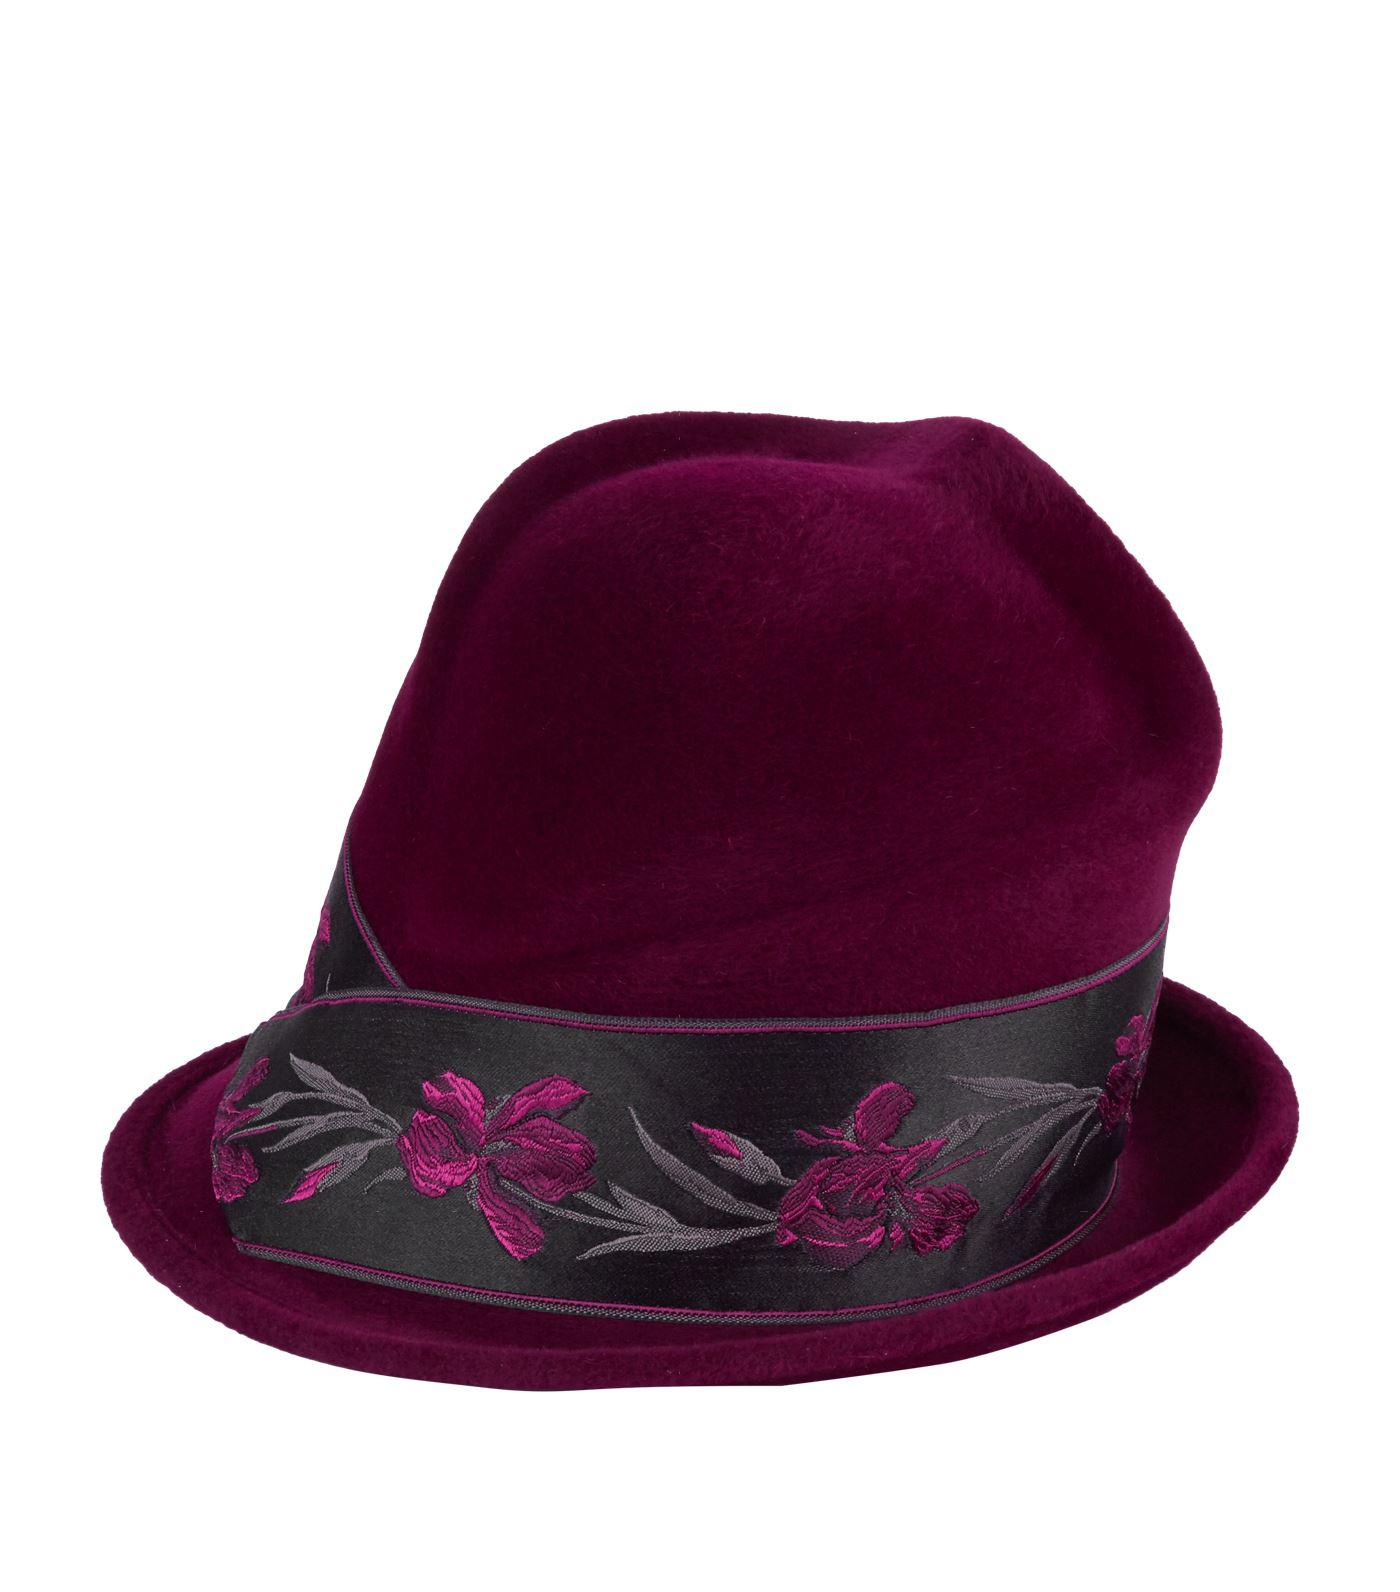 Philip Treacy Floral Band Side Sweep Hat in Purple - Lyst 2ddbe785cb11